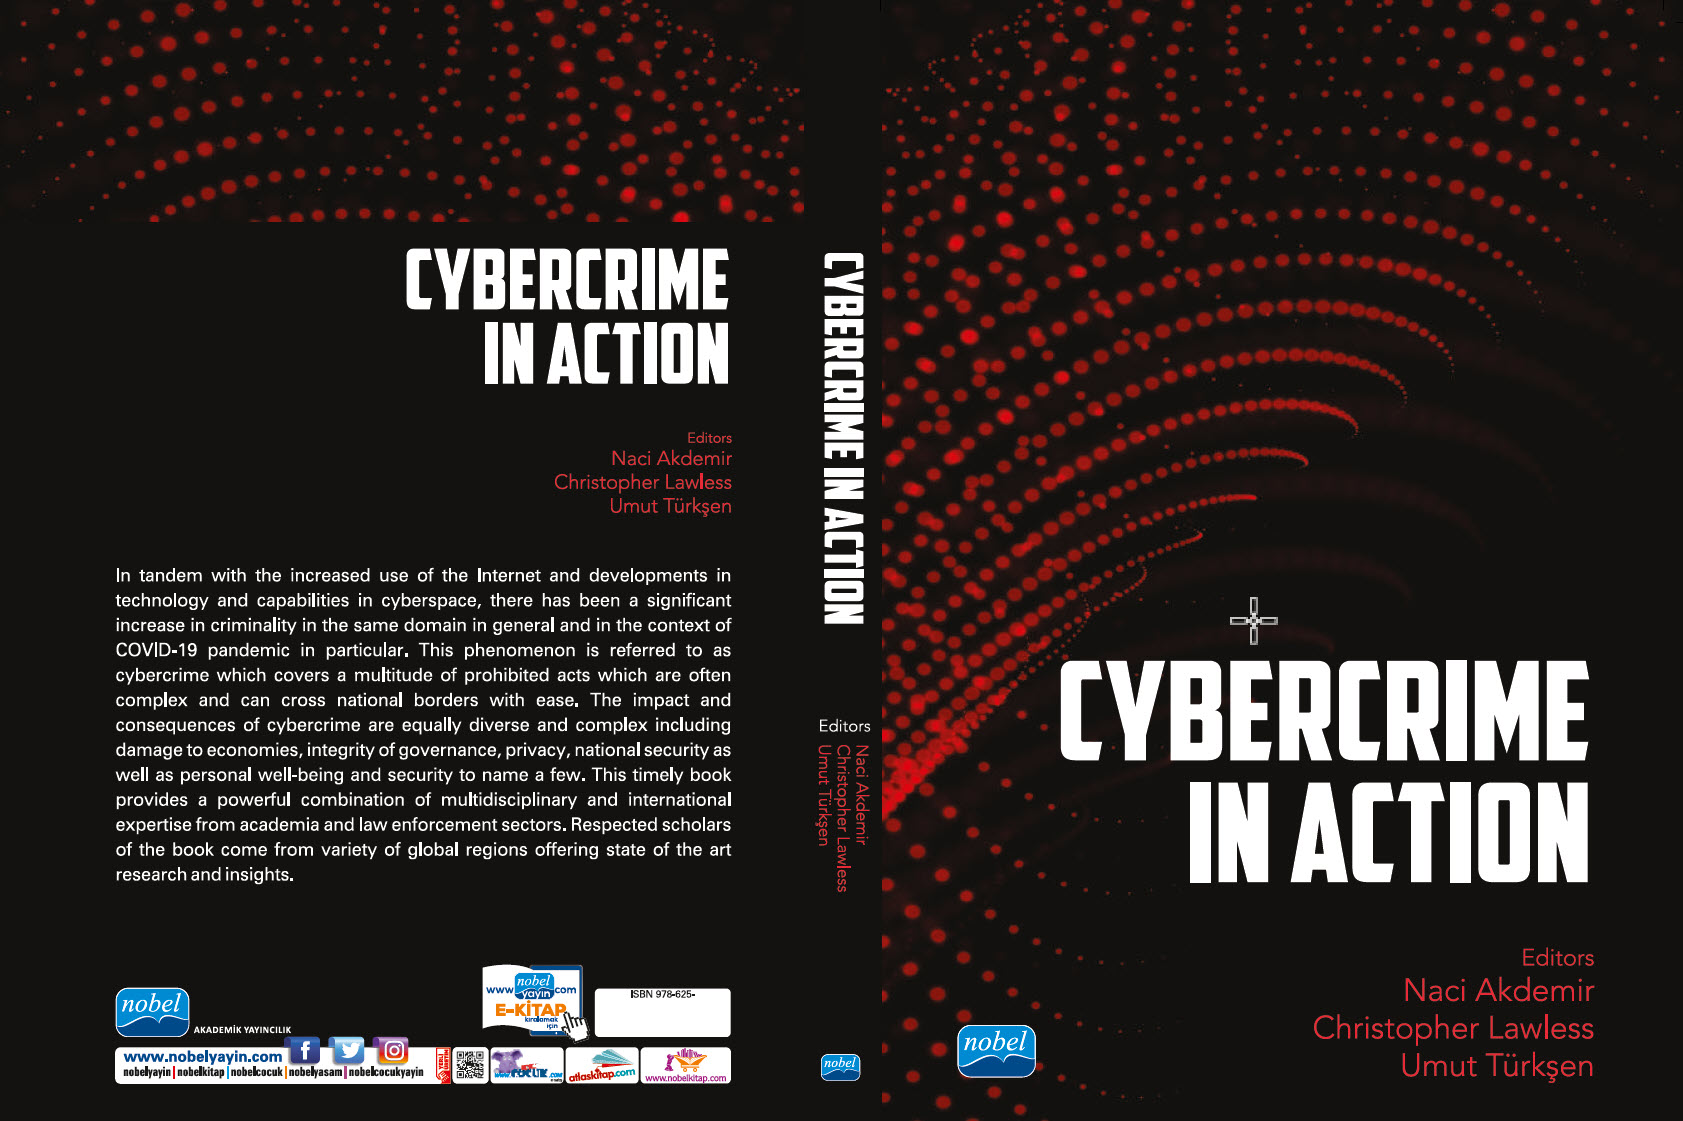 Cyber Crime in Action